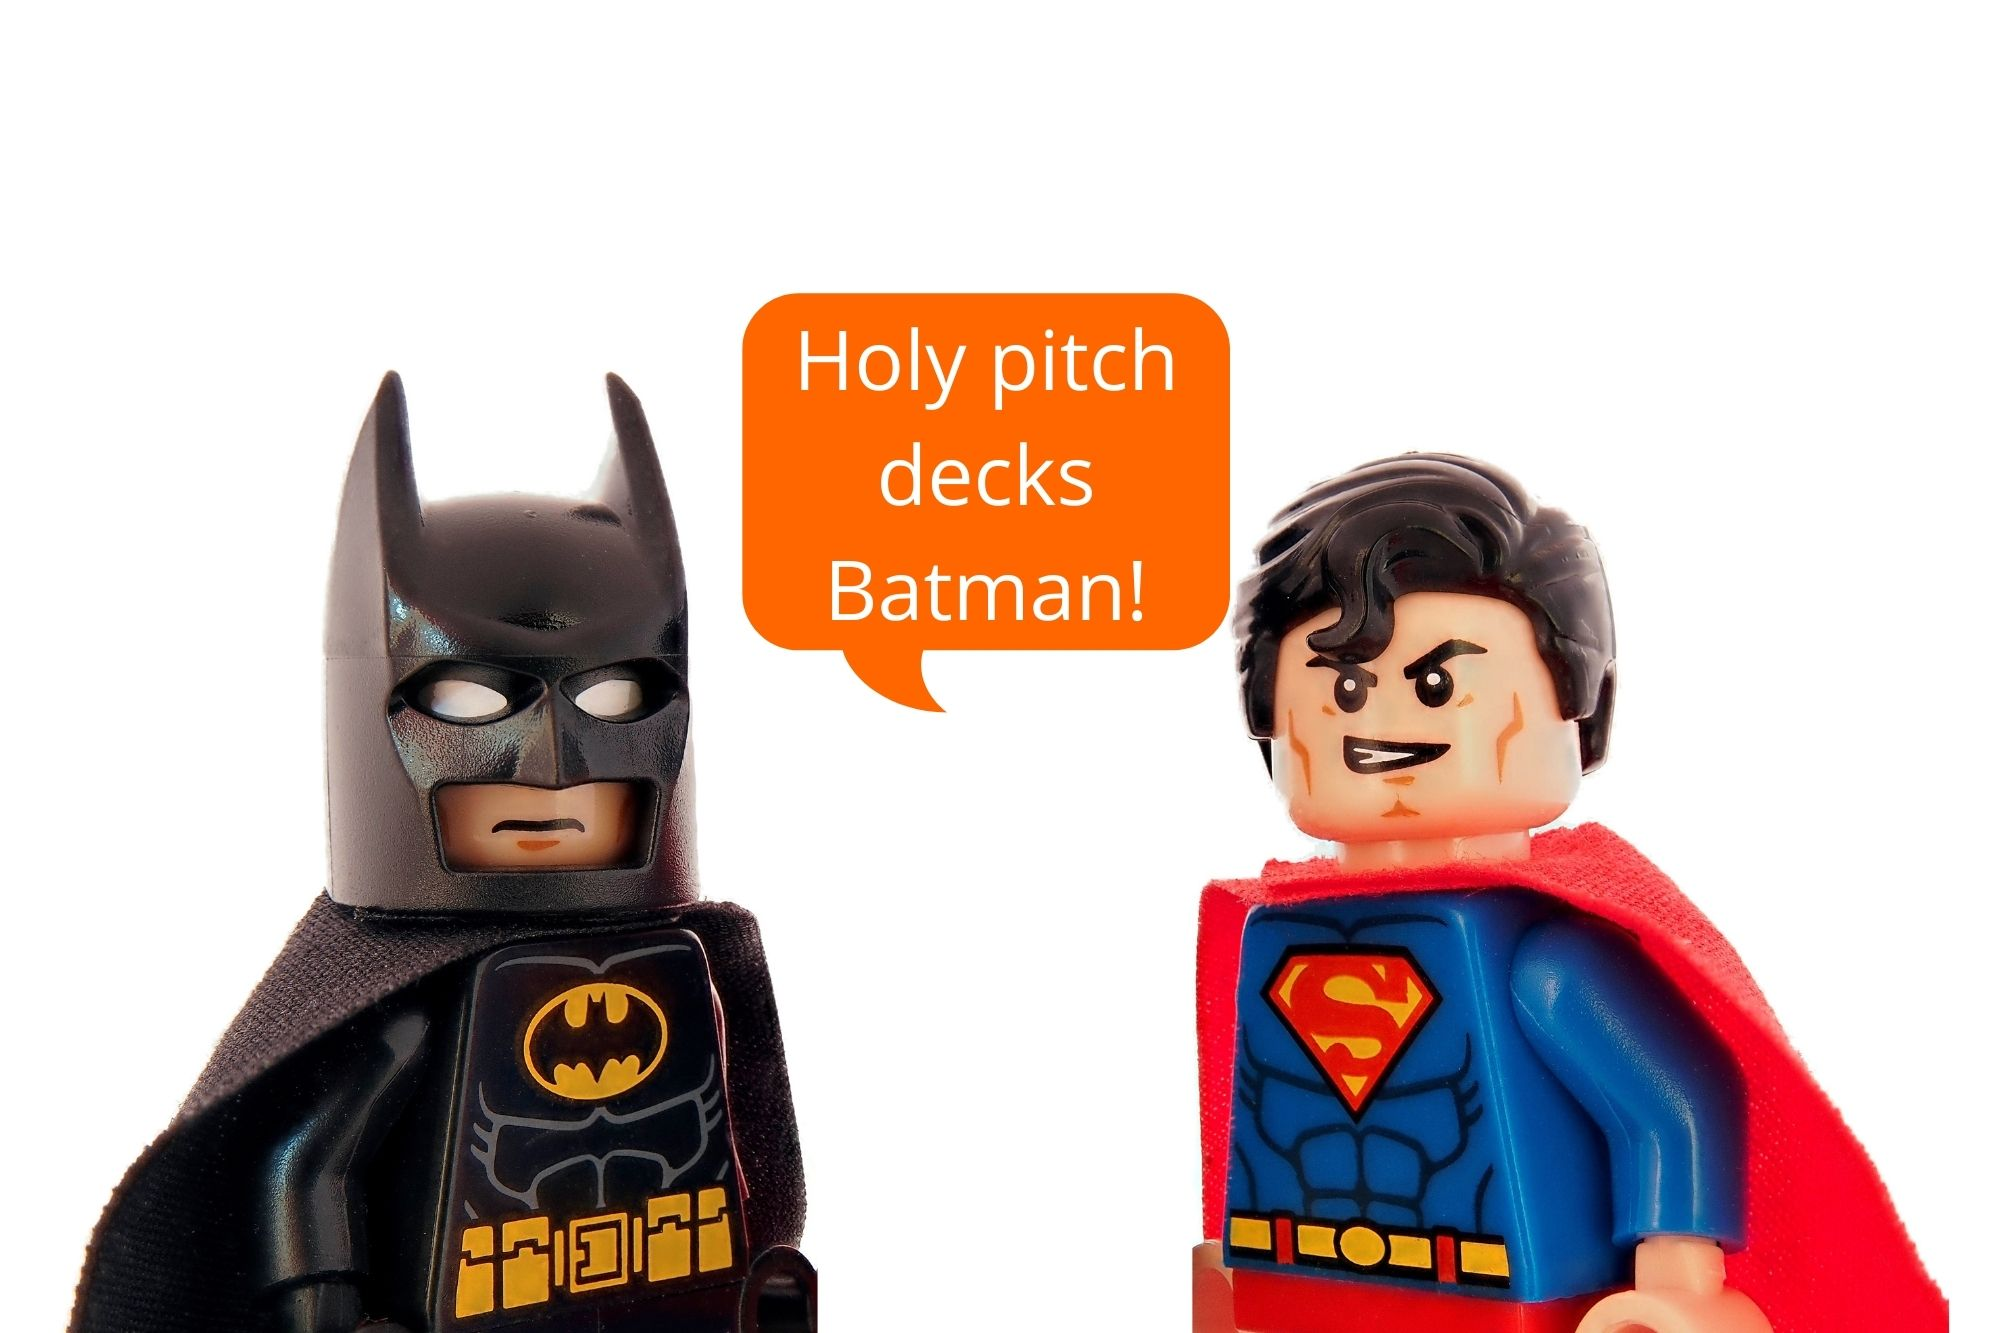 Pitching heroes